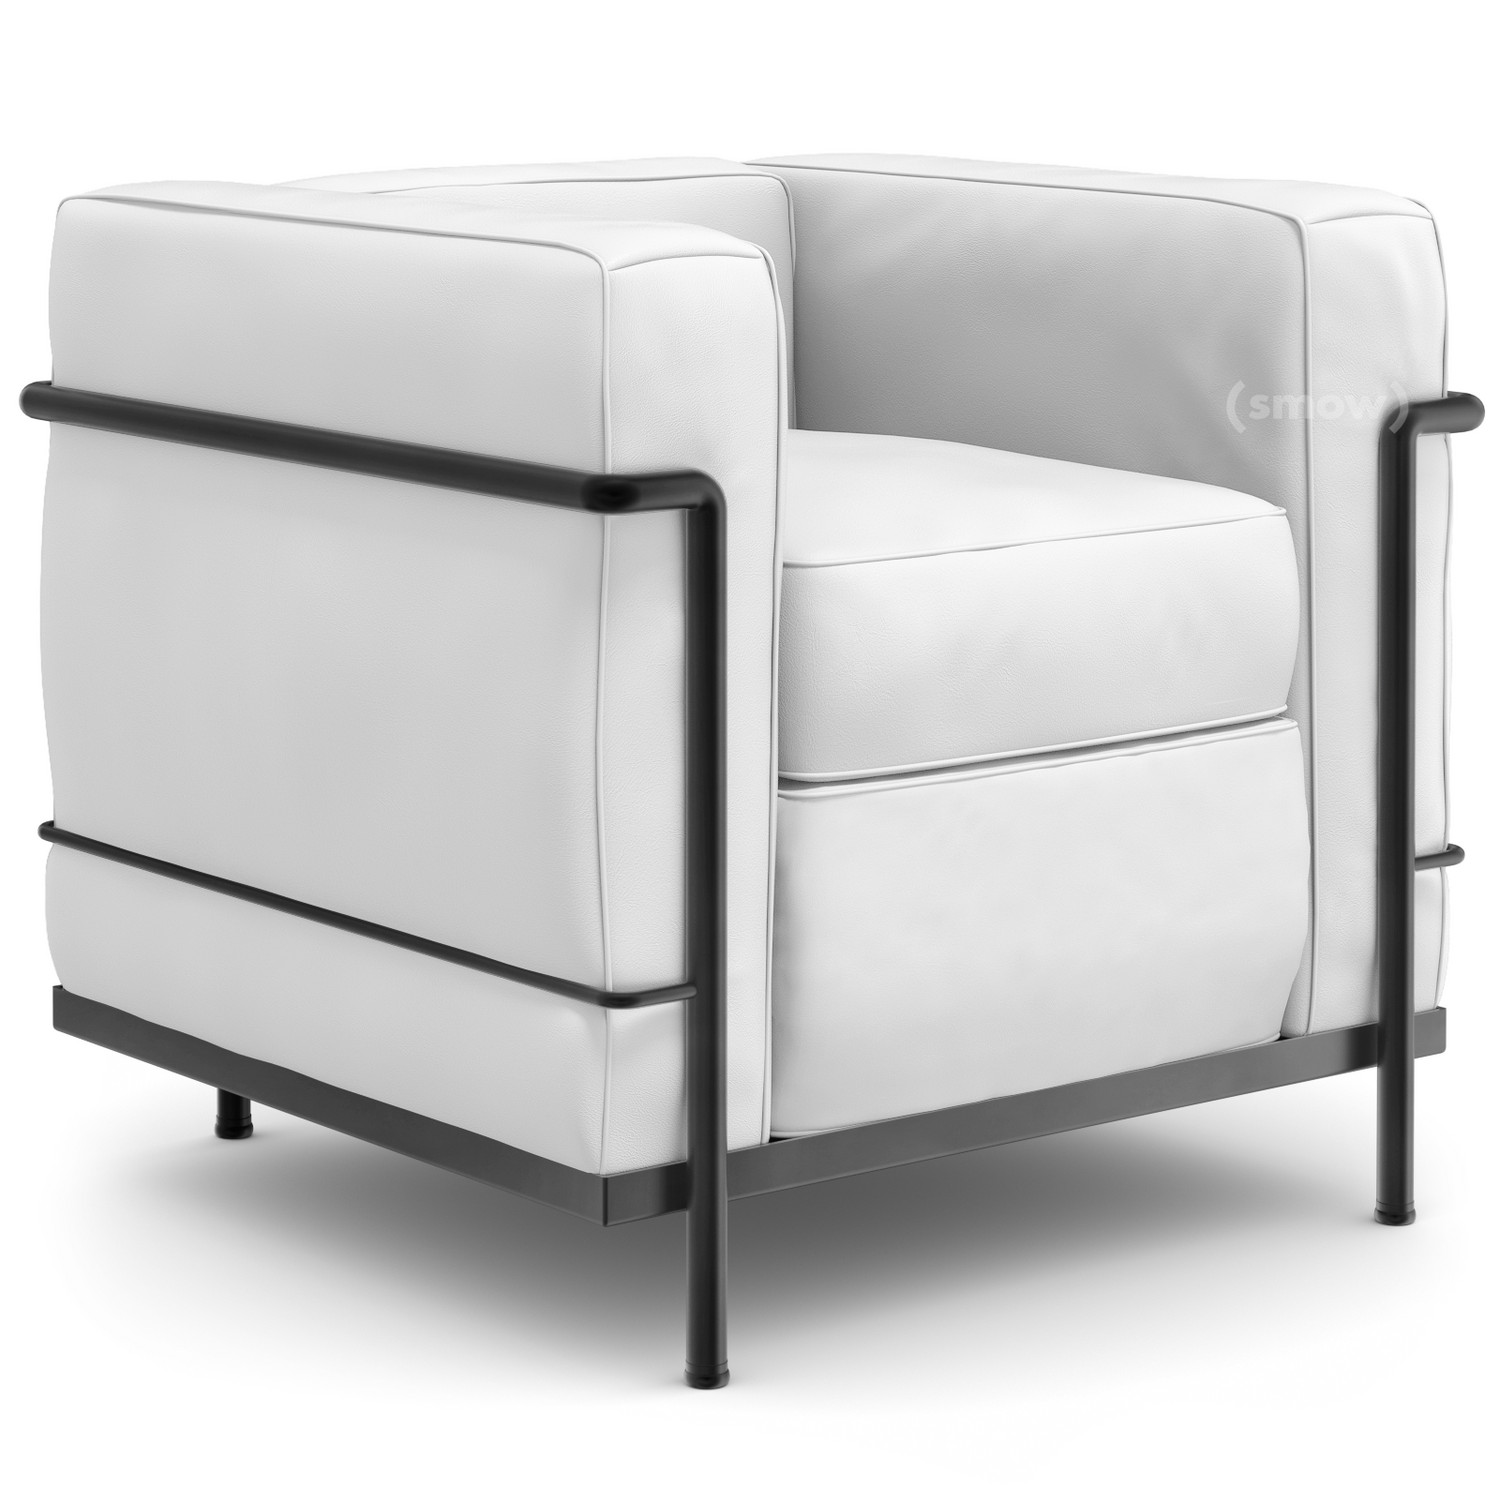 Le Corbusier Sessel Lc2 Cassina Lc2 Armchair Matt Black Lacqured Leather Scozia White